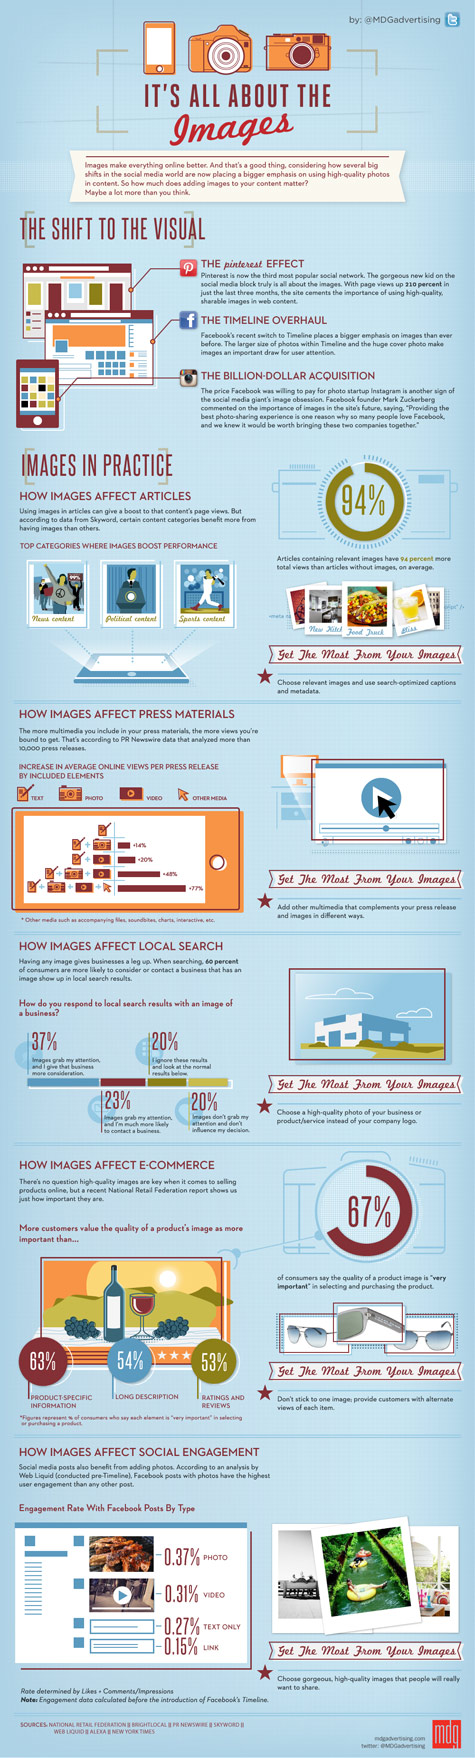 about images infographic